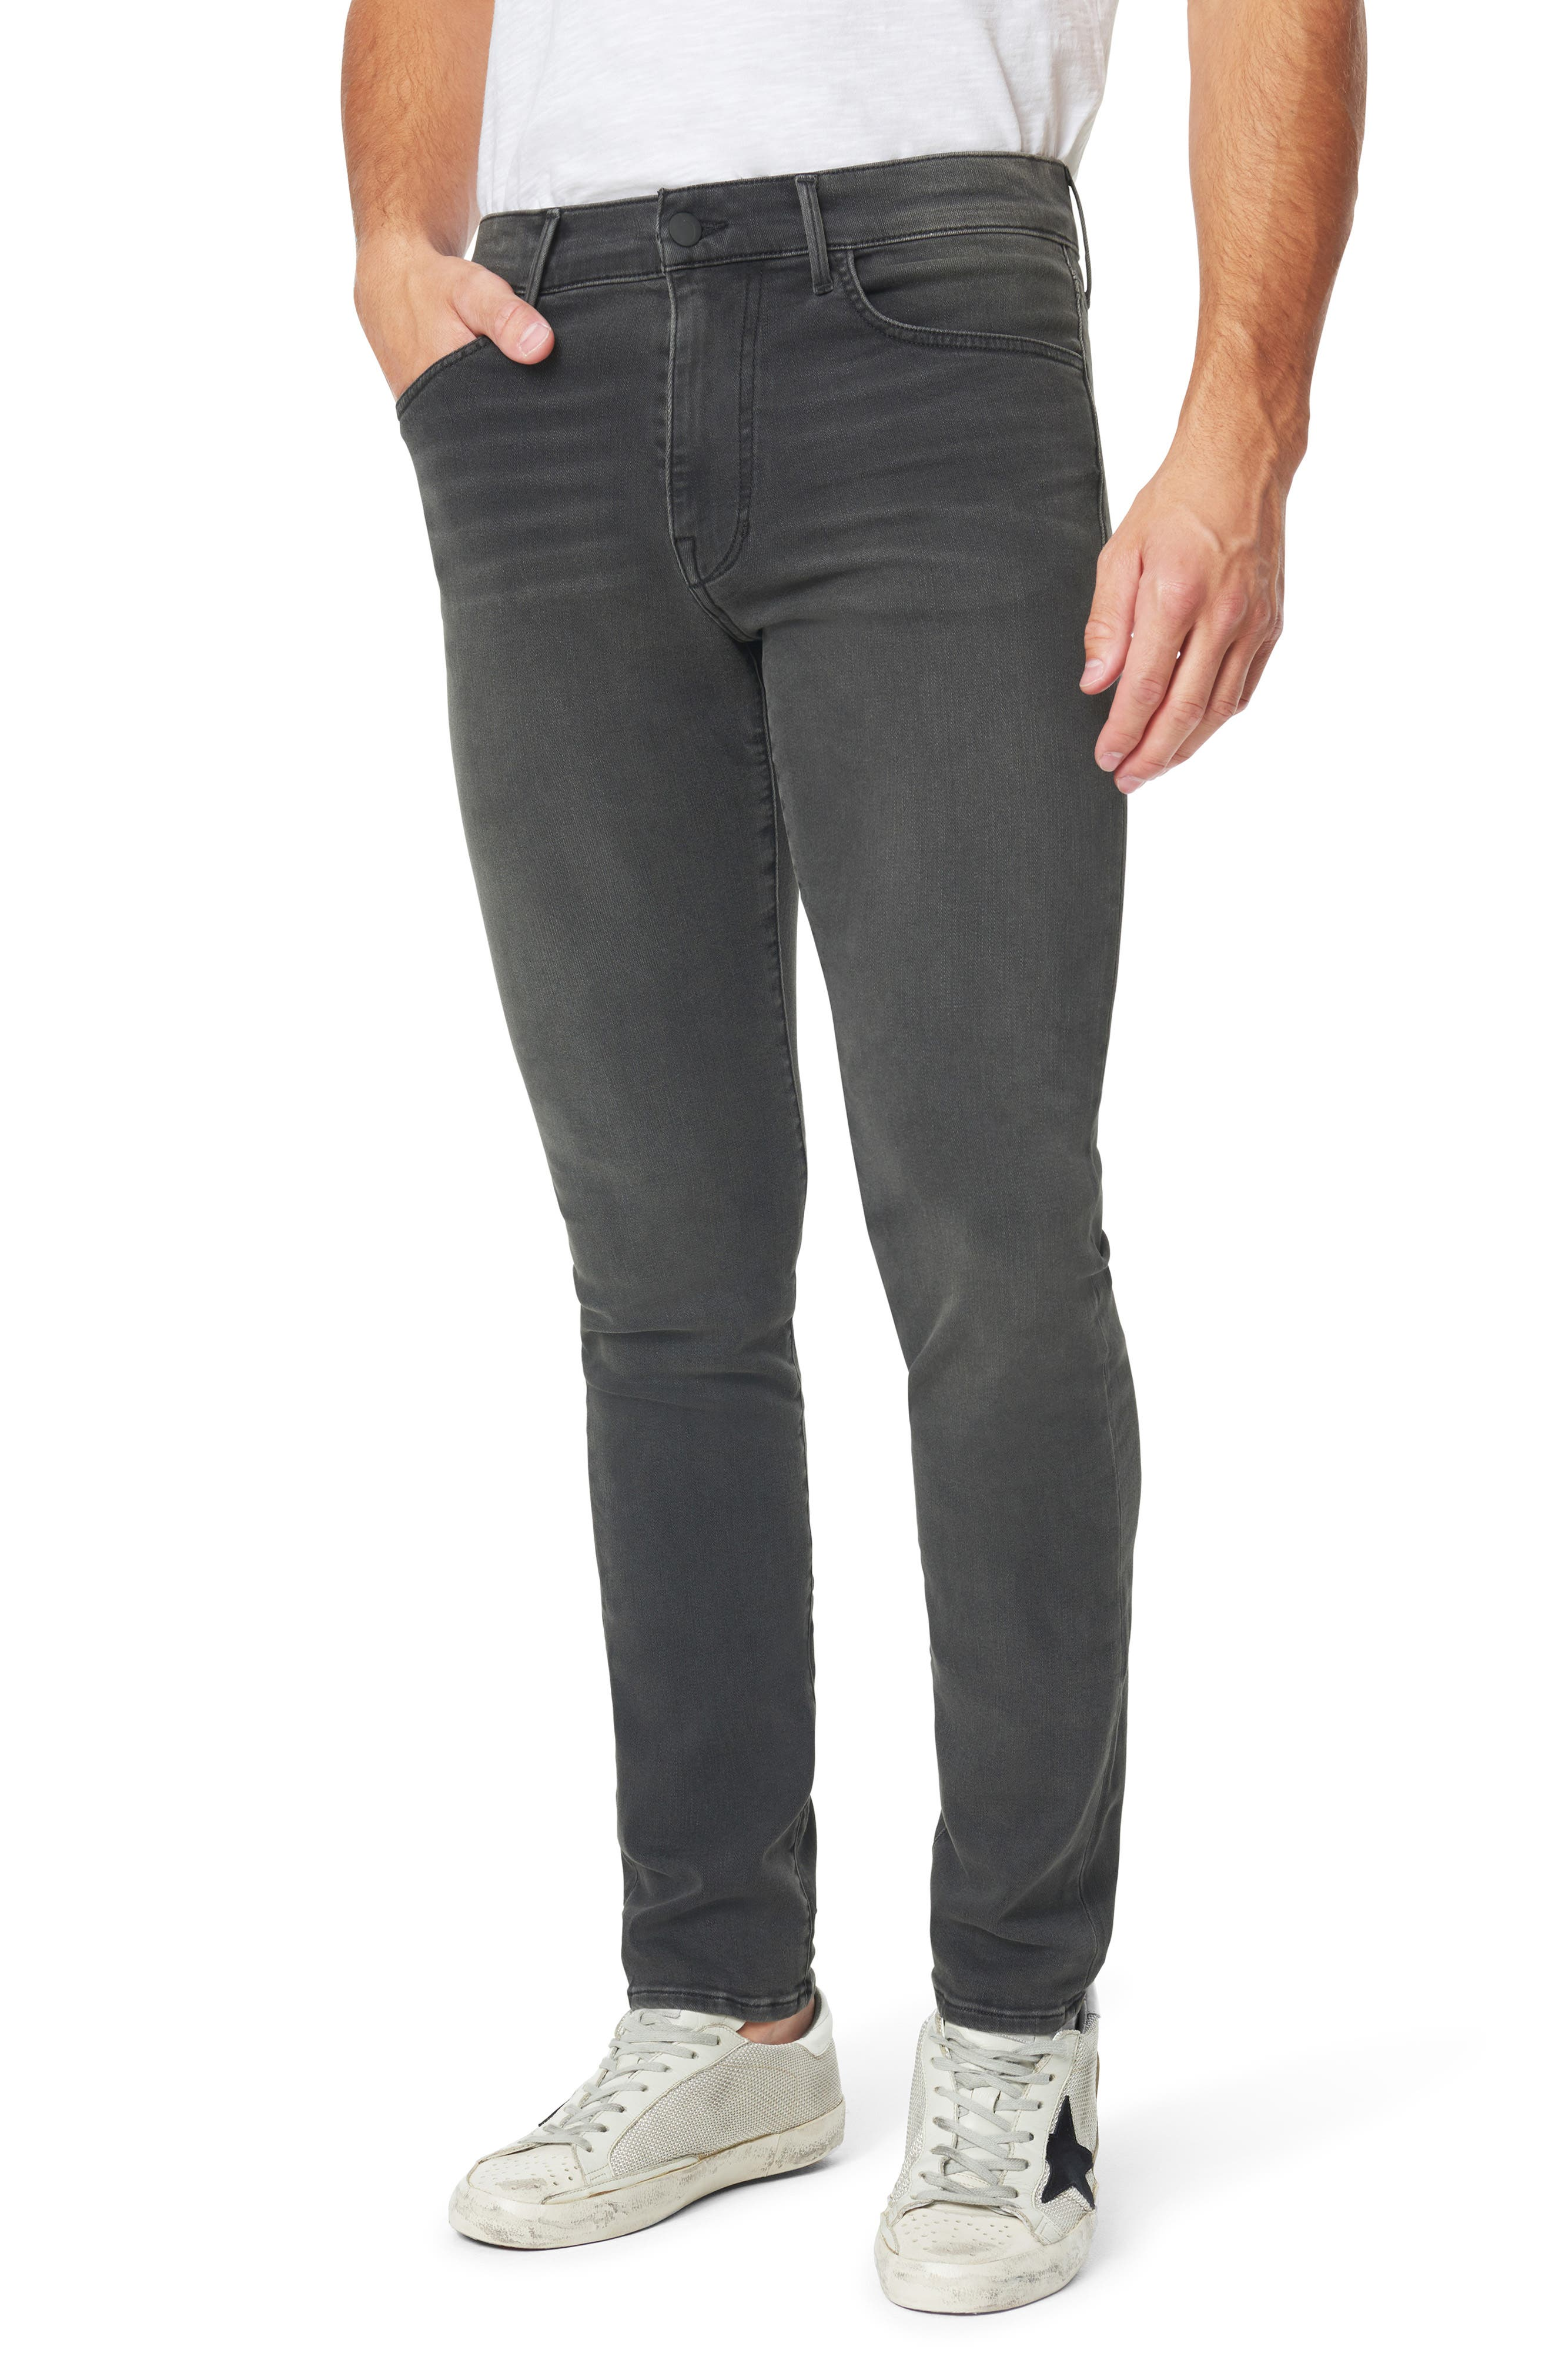 Image of Joe's Jeans The Dean Slim Leg Jeans